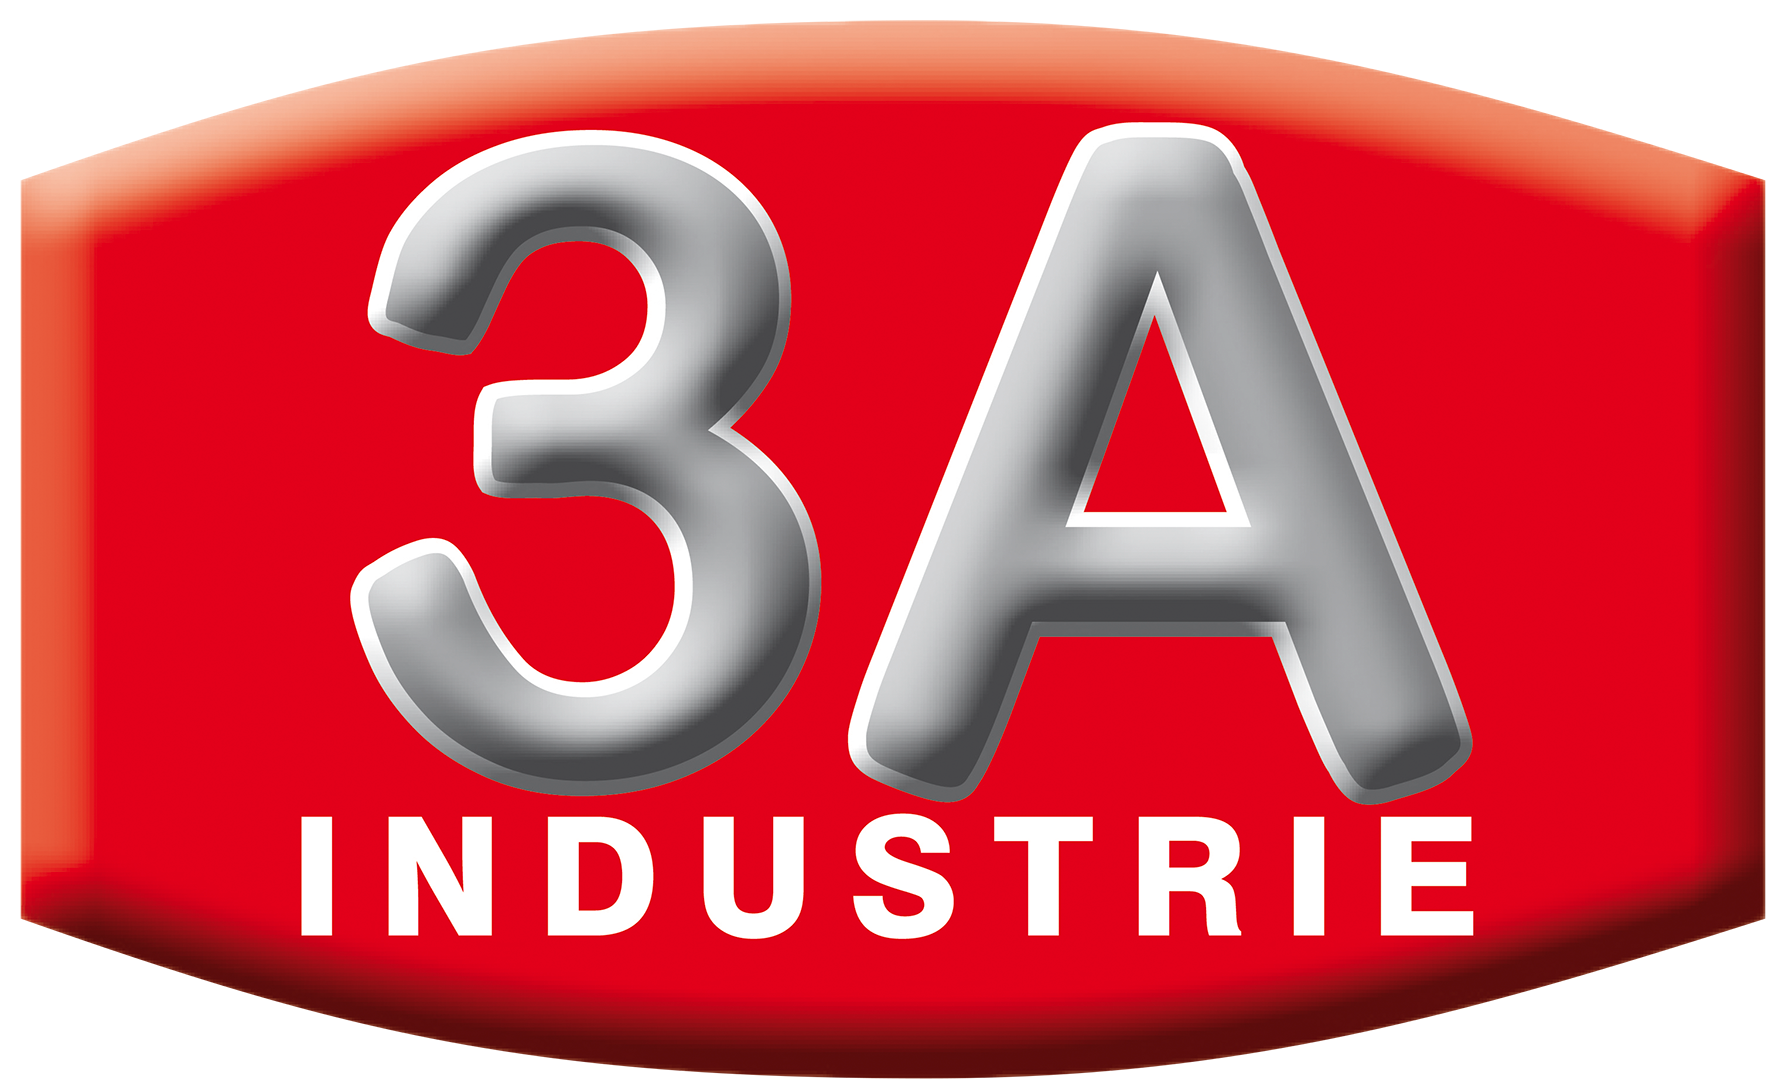 3A INDUSTRIE